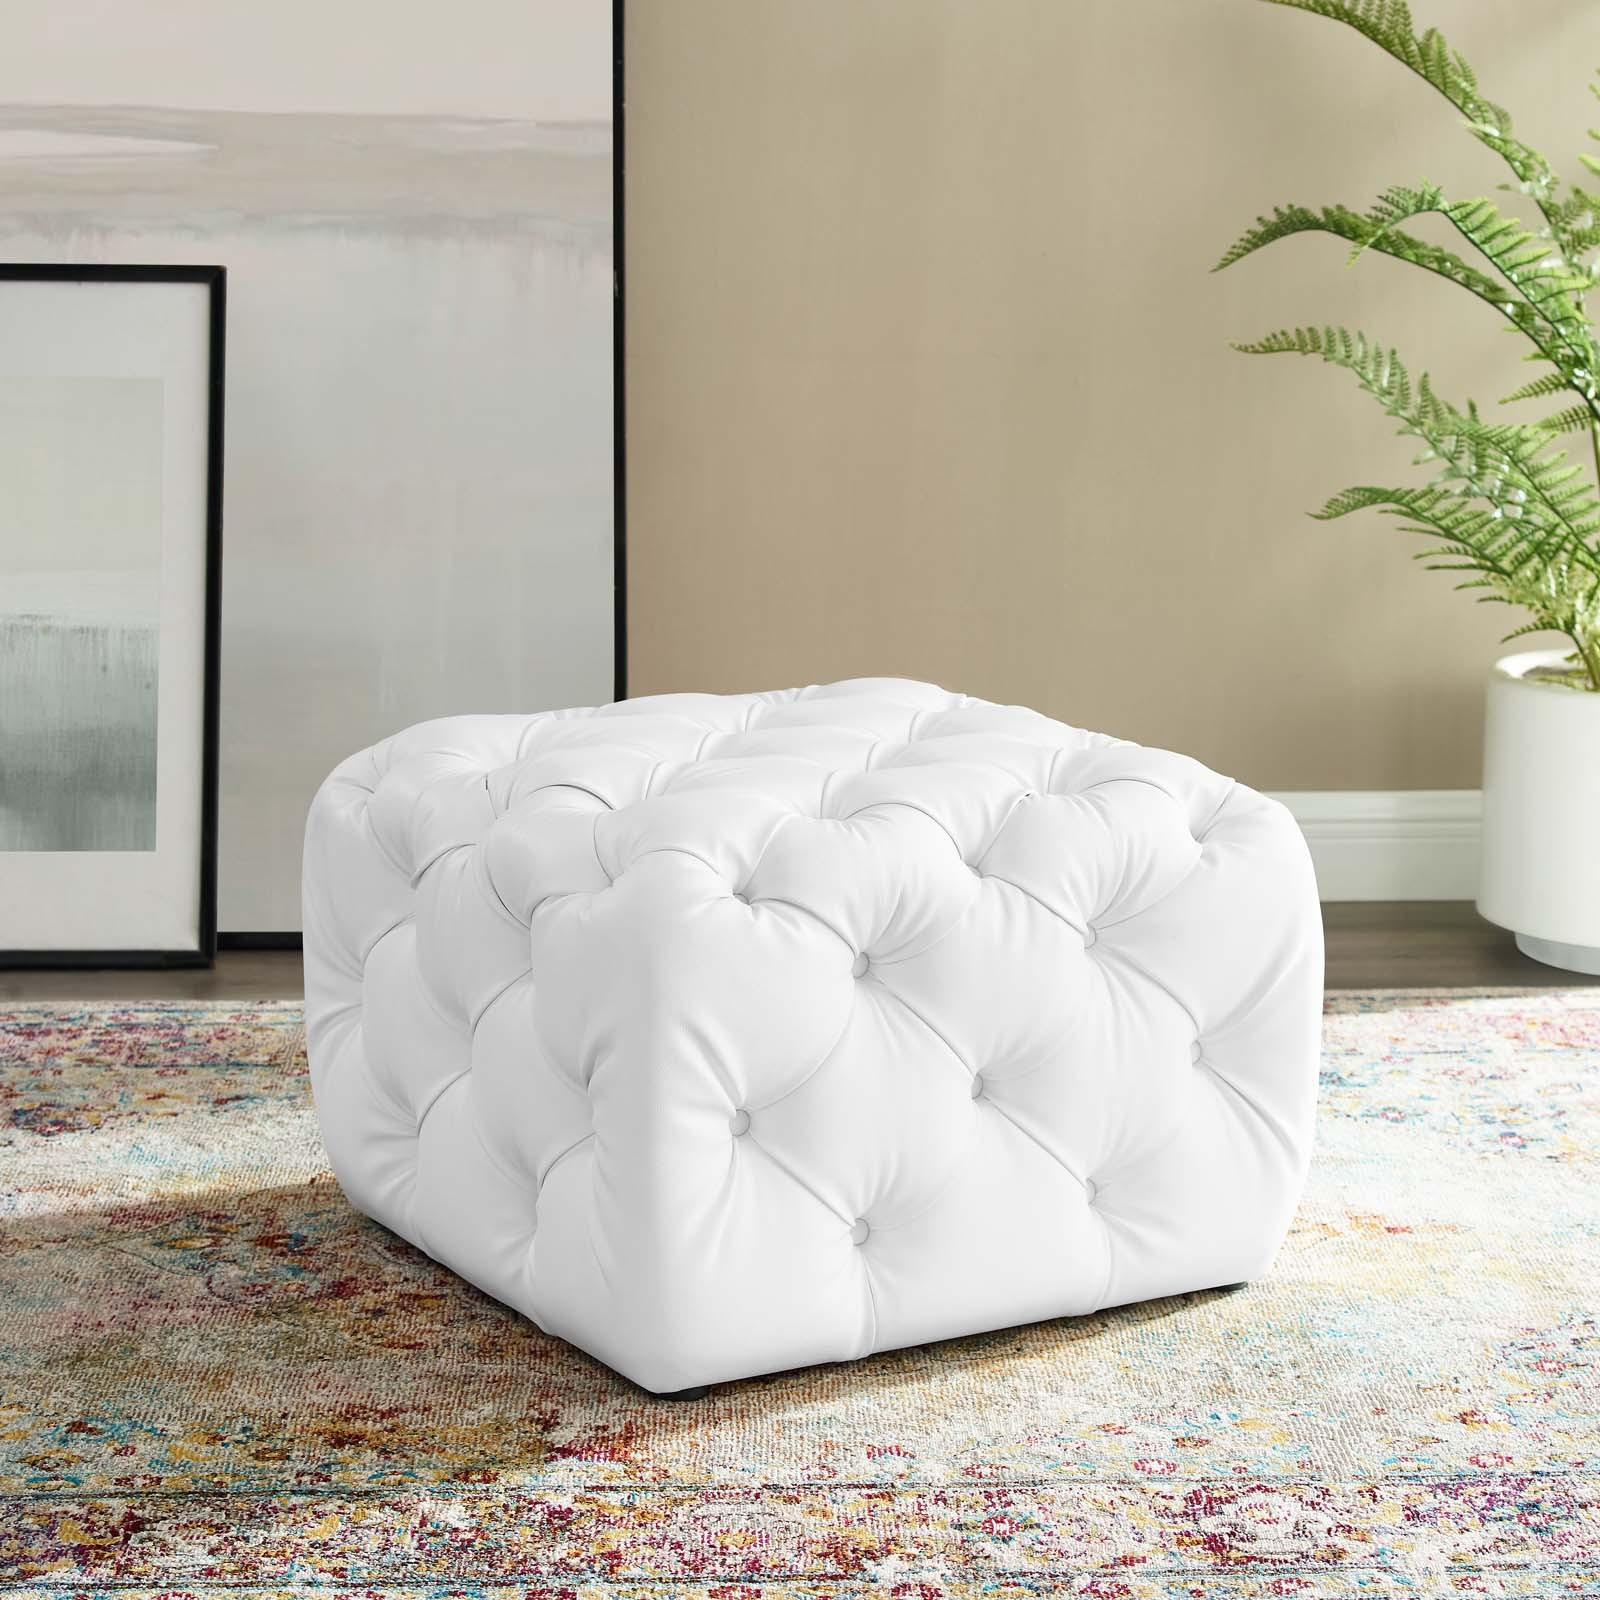 Anthem Kitchen And Bar: Anthem White Tufted Button Square Faux Leather Ottoman EEI